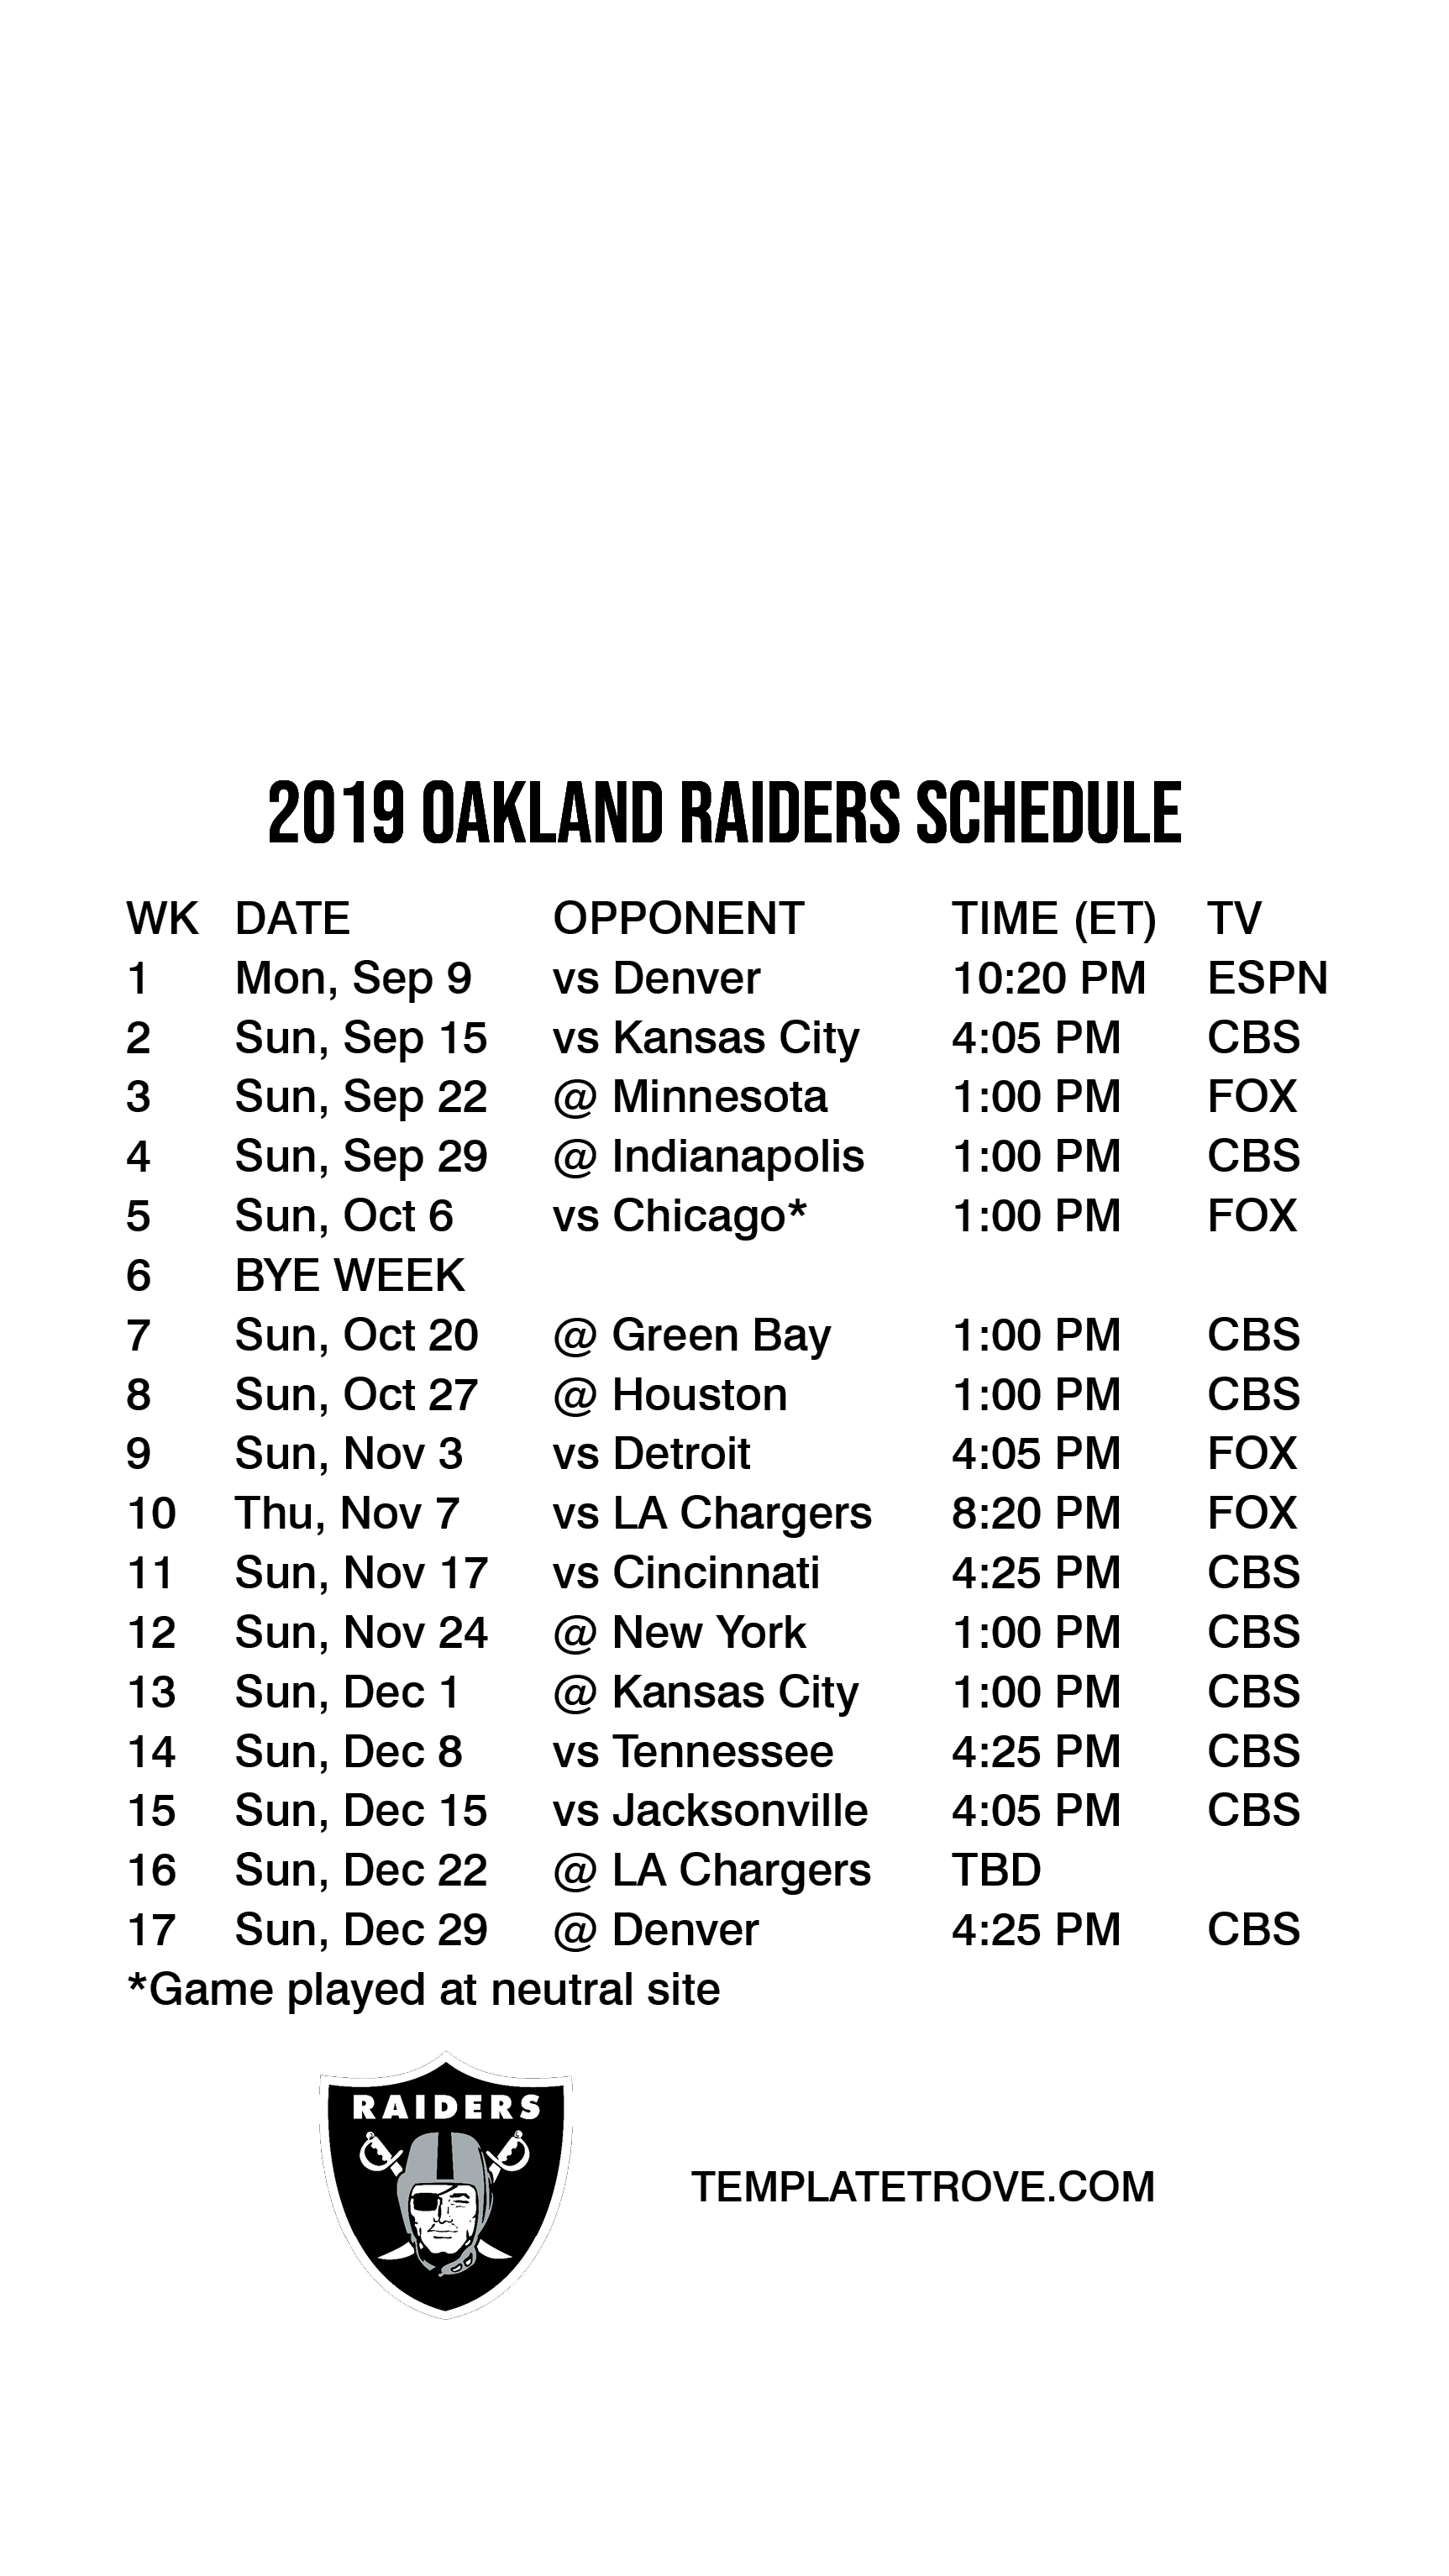 Raiders Schedule 2020.2019 2020 Oakland Raiders Lock Screen Schedule For Iphone 6